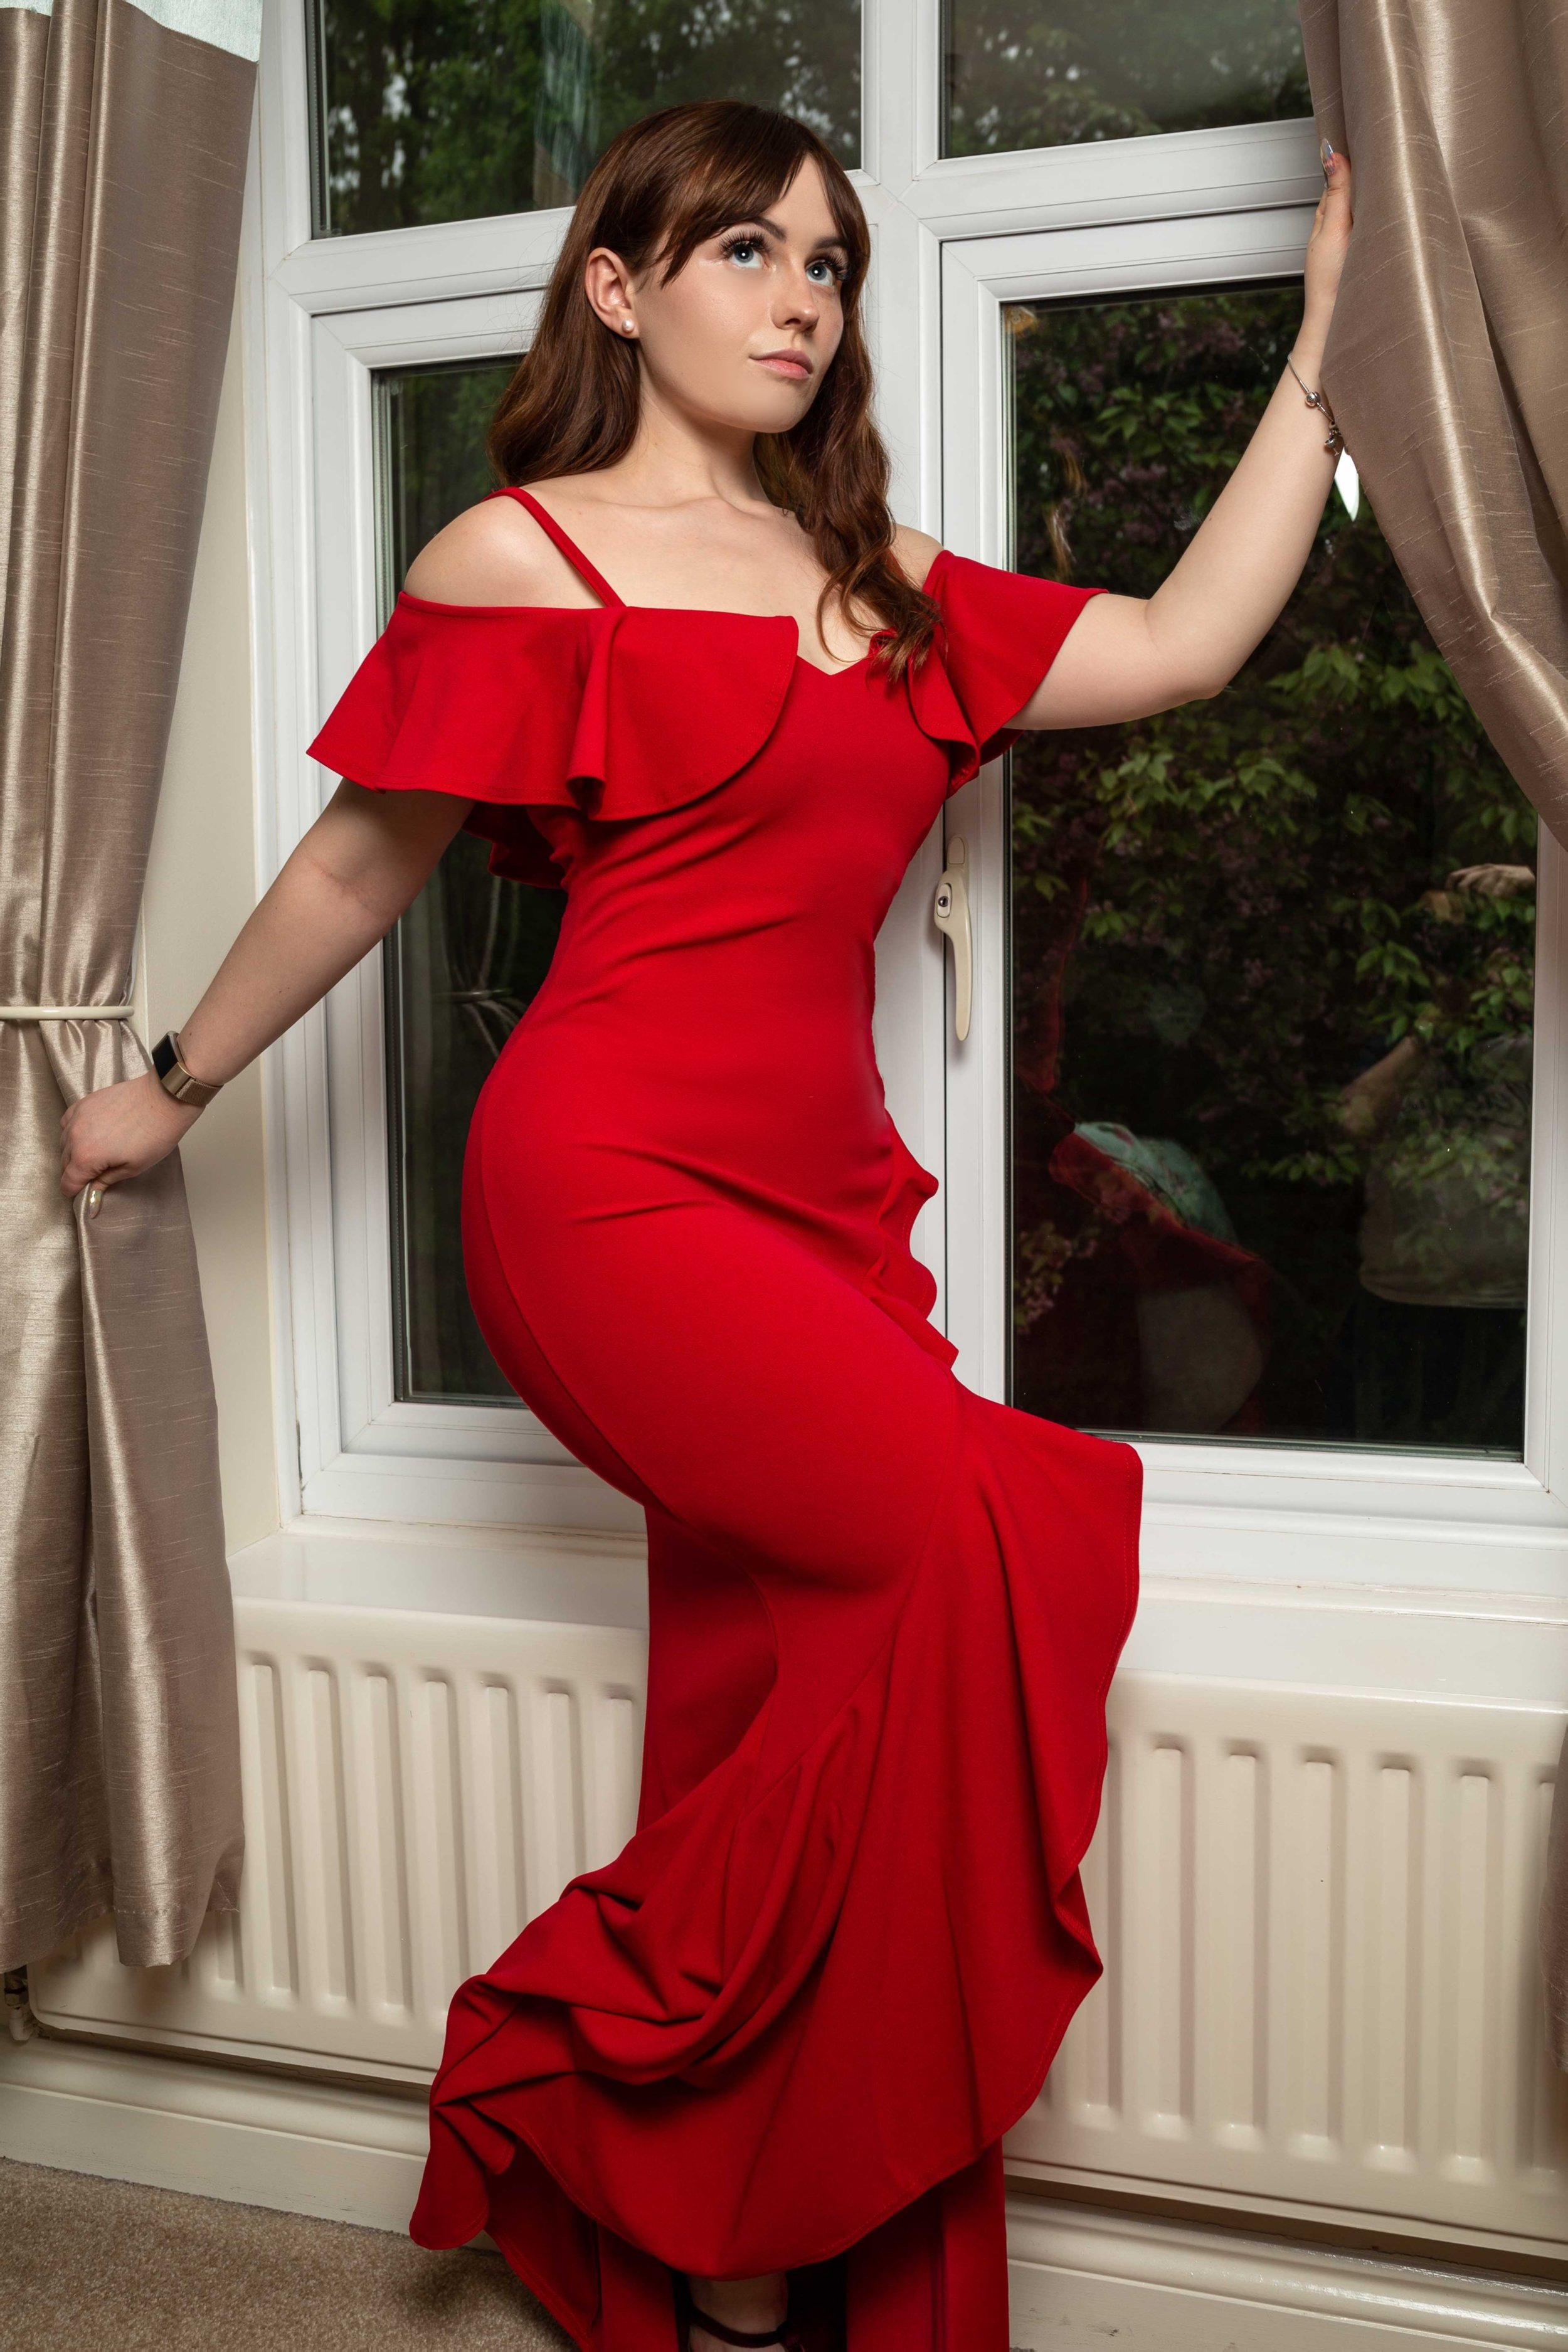 2. - QuizRed Cold Shoulder Frill Maxi Dress£54.99Feeling Fiery? This dress really pushes that red carpet glamour feel but is still comfortable! Again it's made from a material with loads of stretch and hugs all the right places. Also this split leg frill at the bottom of the dress gives me a flamenco feel and will look amazing peeking through the graduation robes!